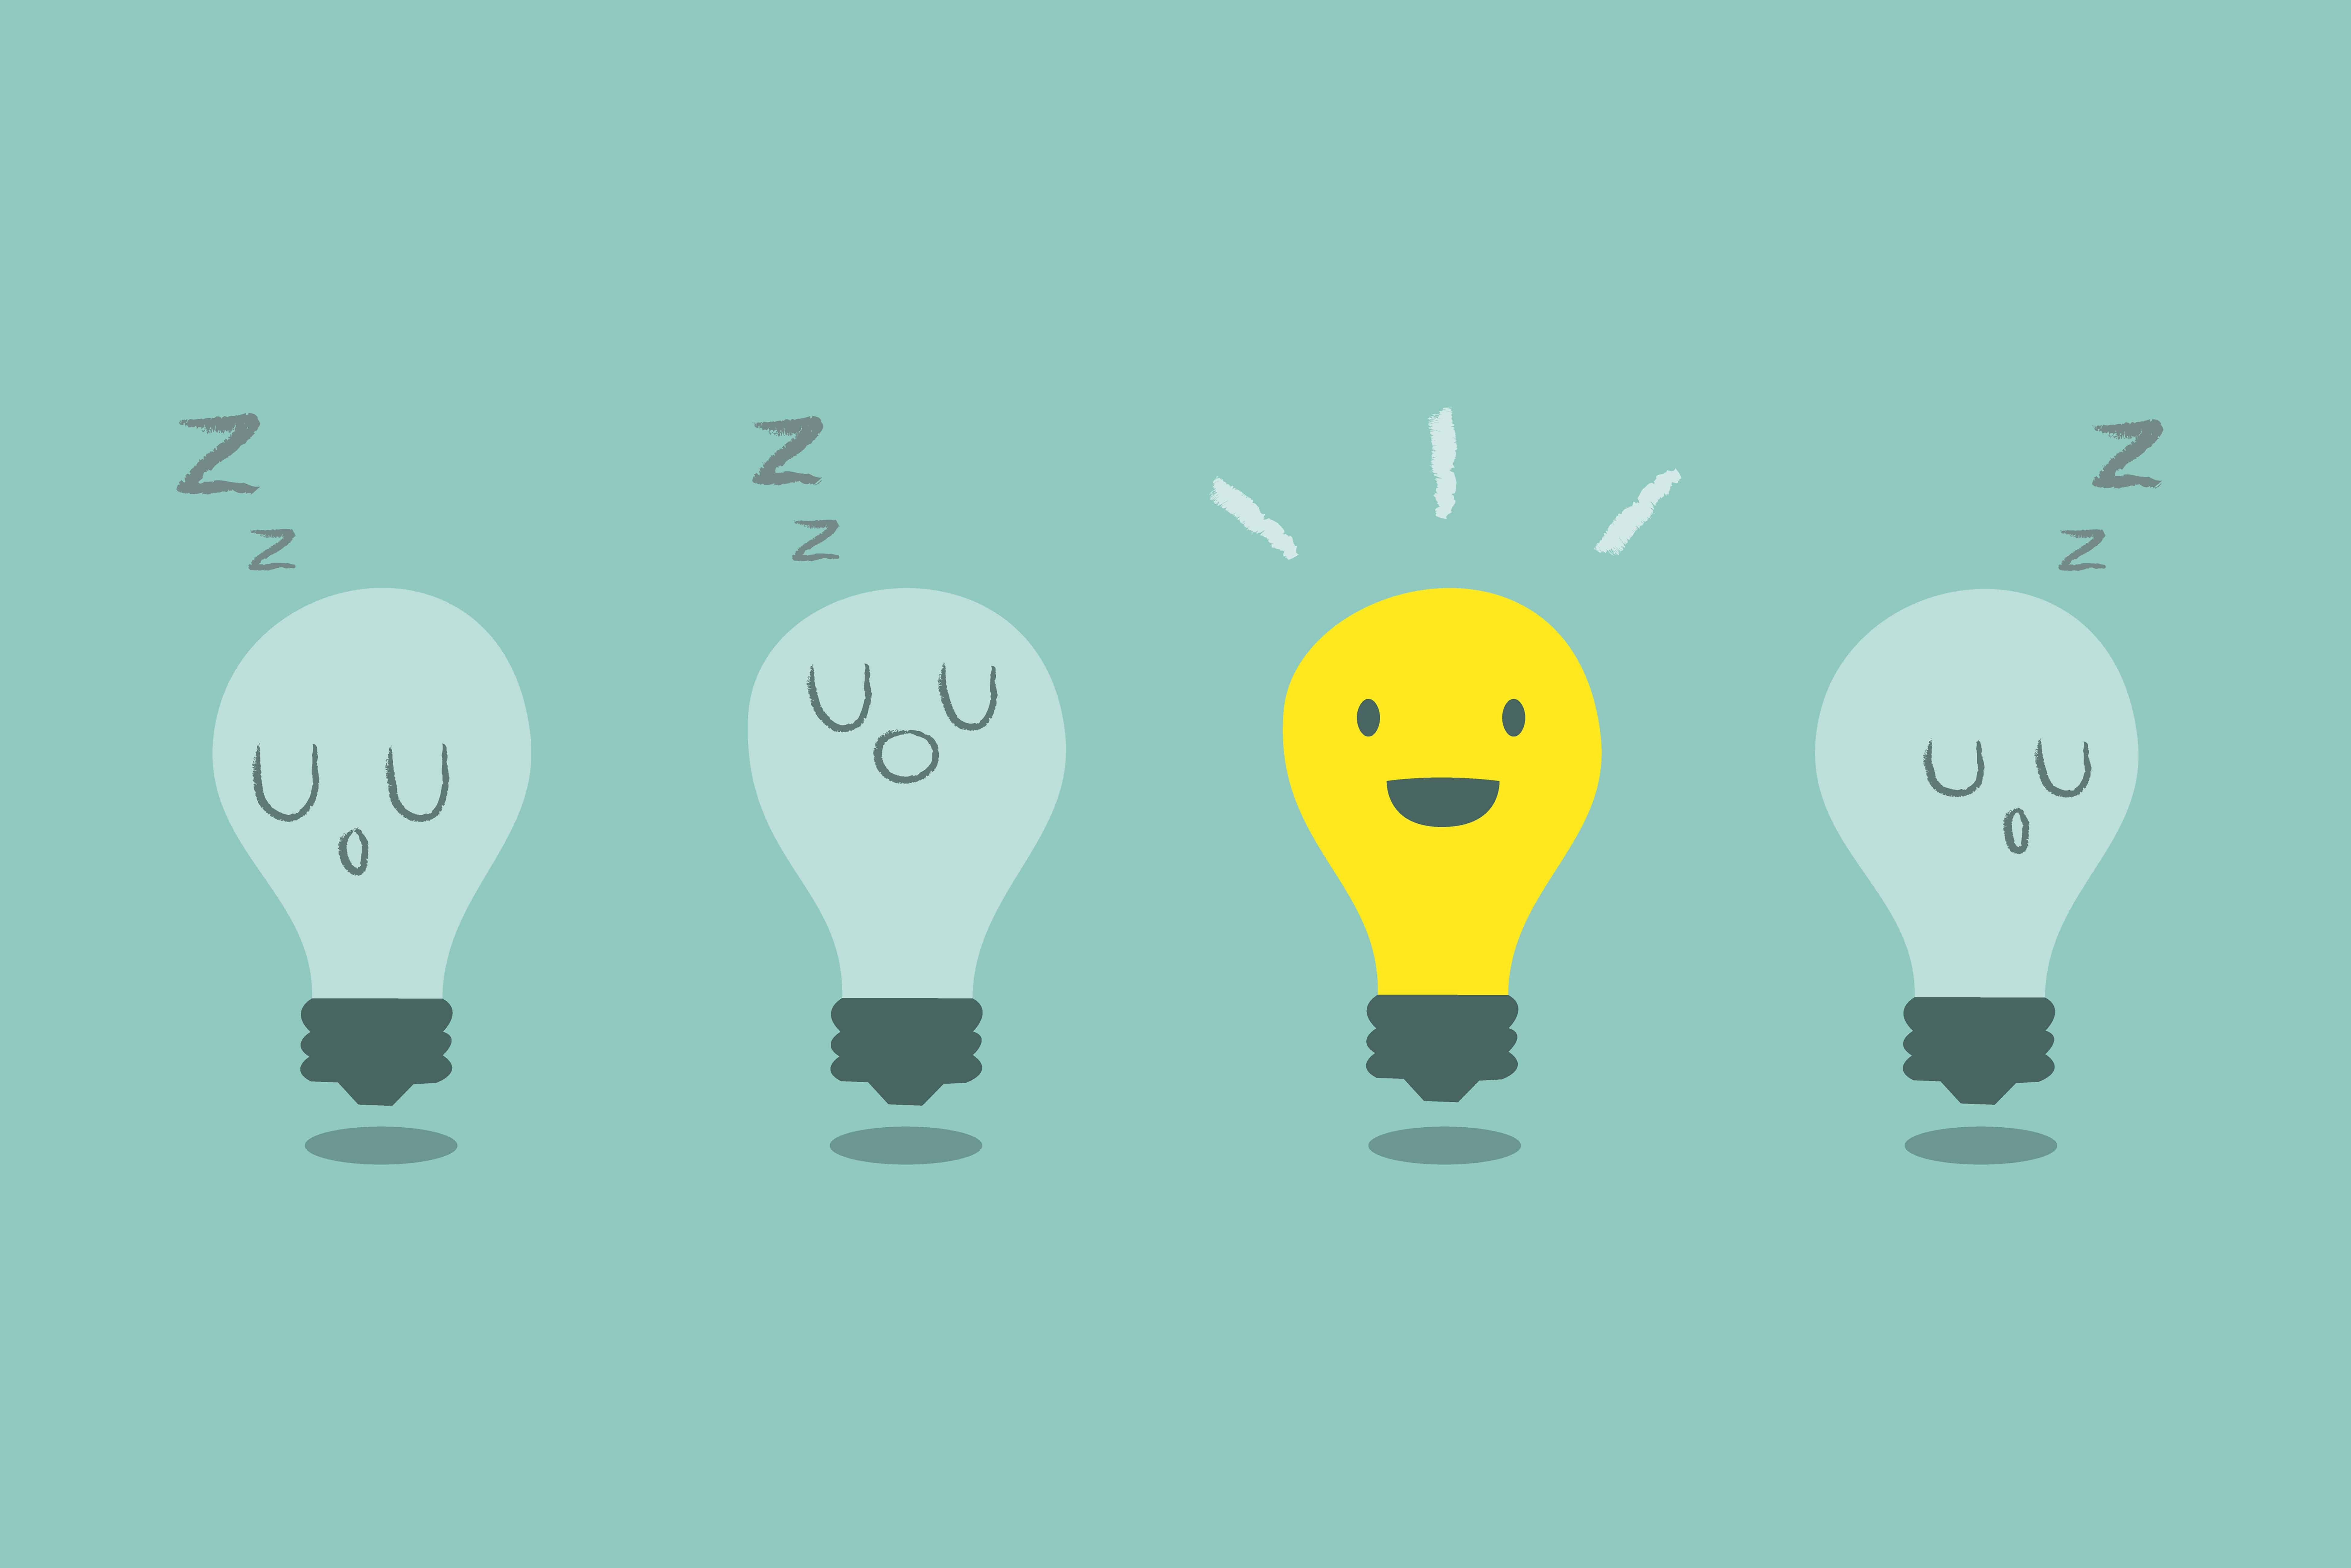 how to come up with a business idea - (generate business ideas)